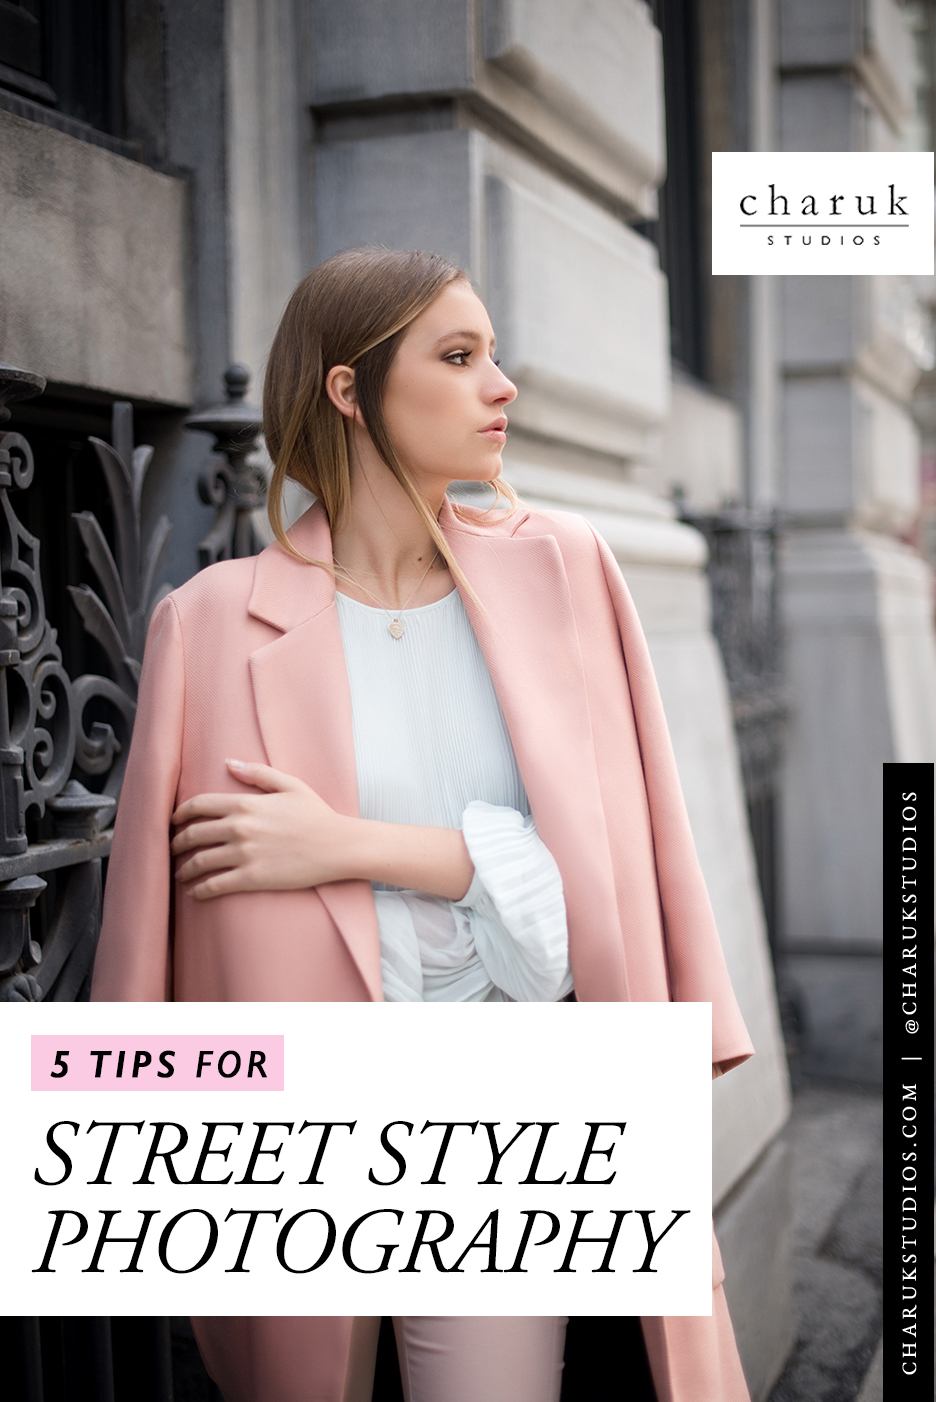 5 Tips for Street Style Photography by Charuk Studios